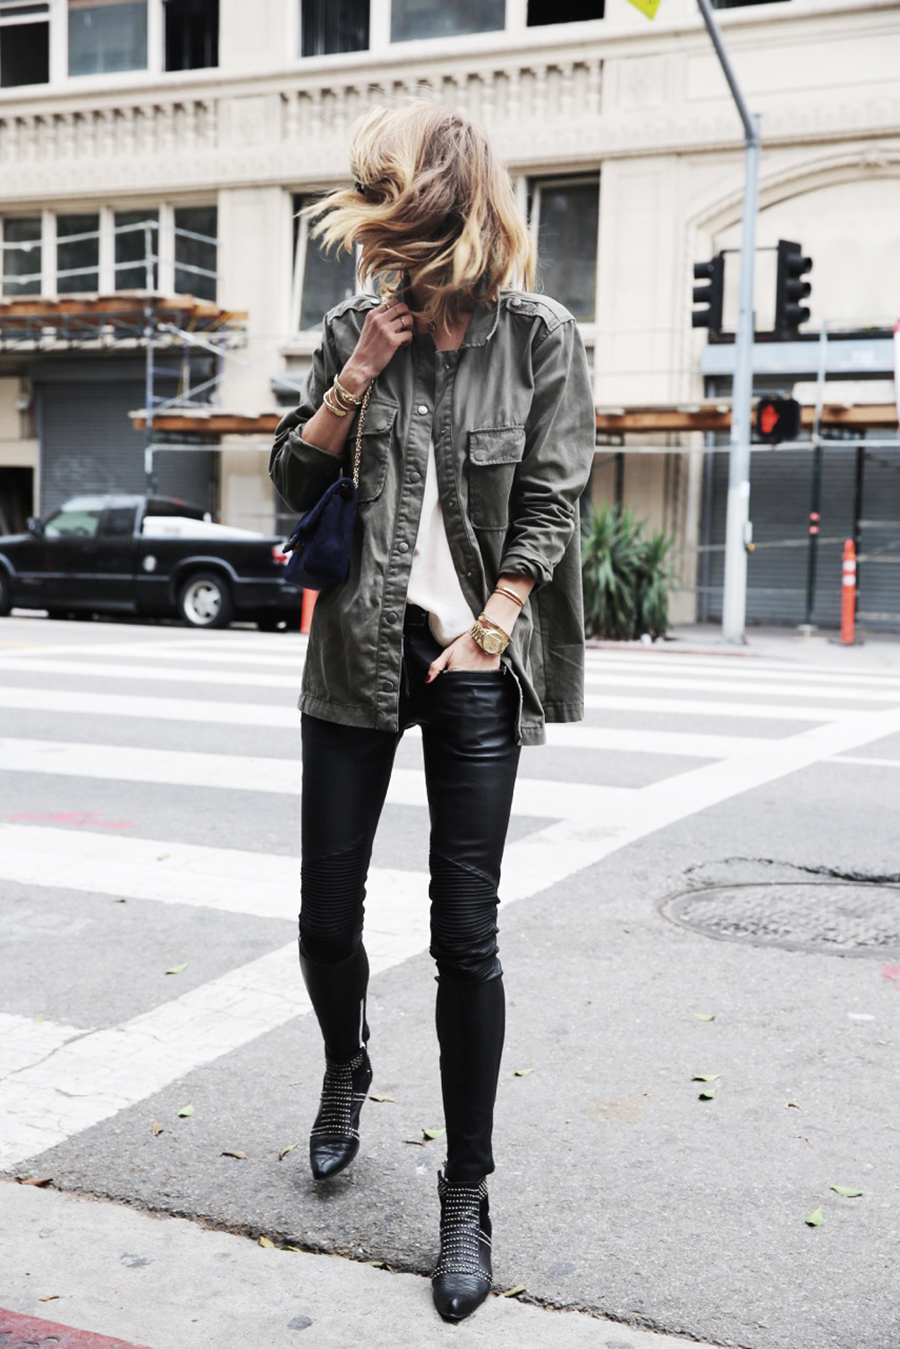 The Khaki Jacket. It Is A Style Staple04 width=